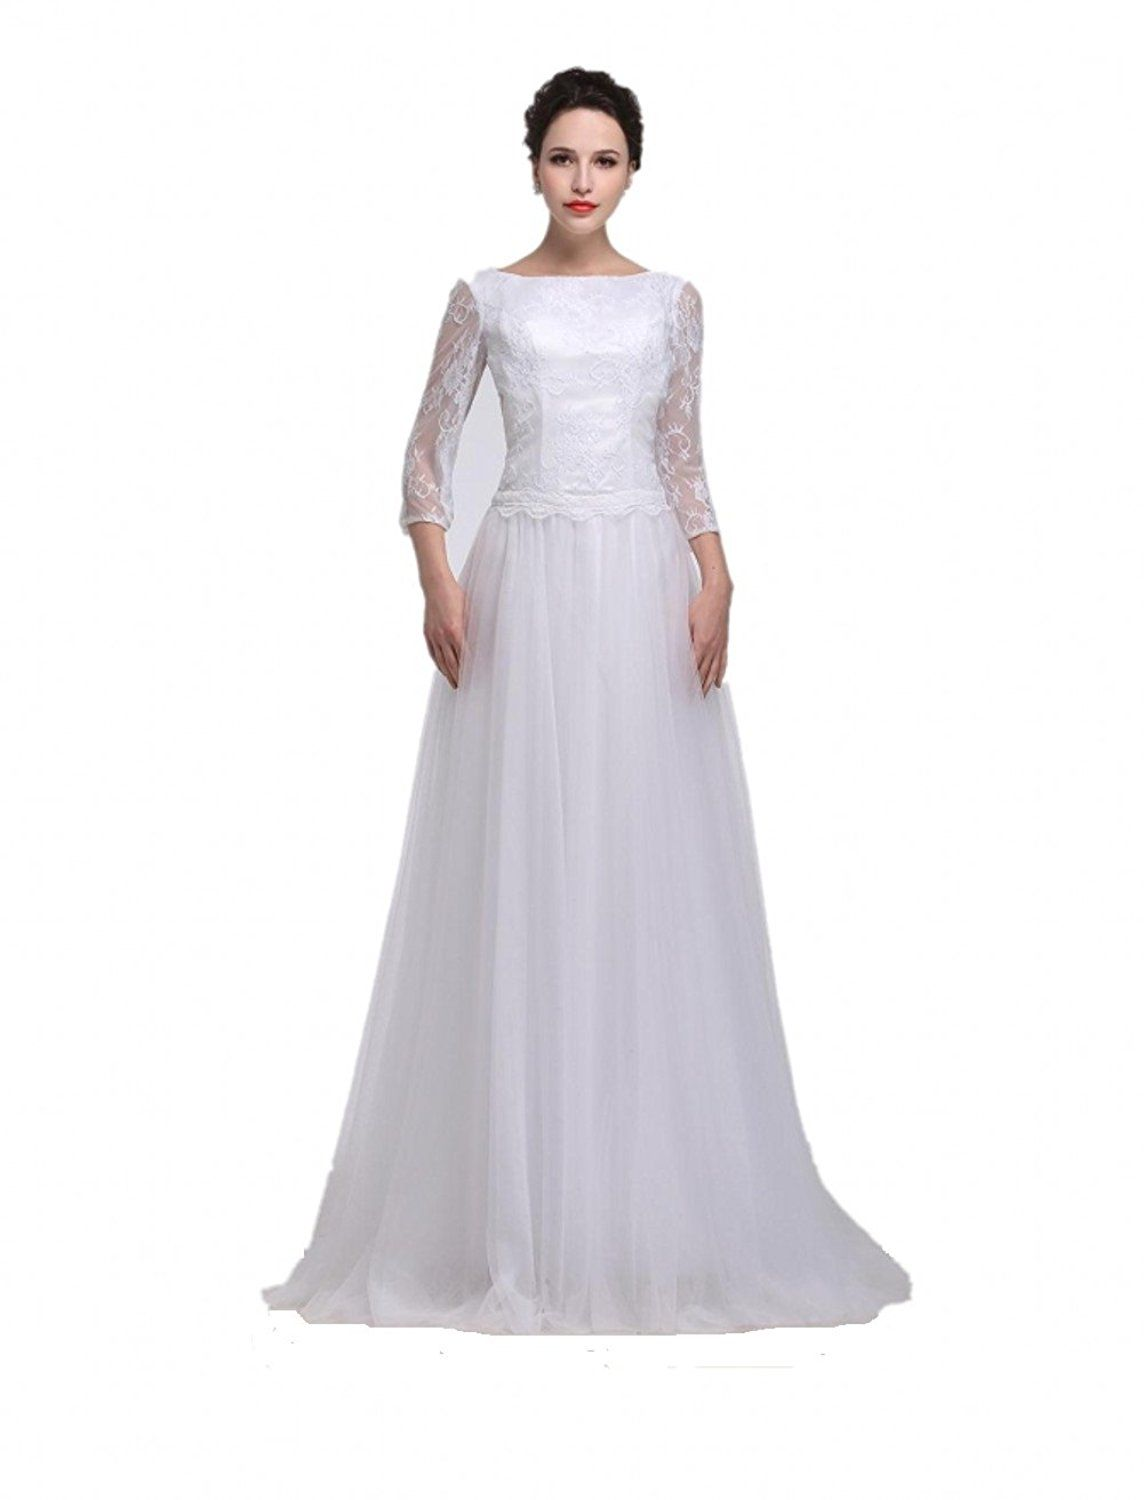 Setwell Womens Organza Satin Boat Neck A Line Wedding Dress More